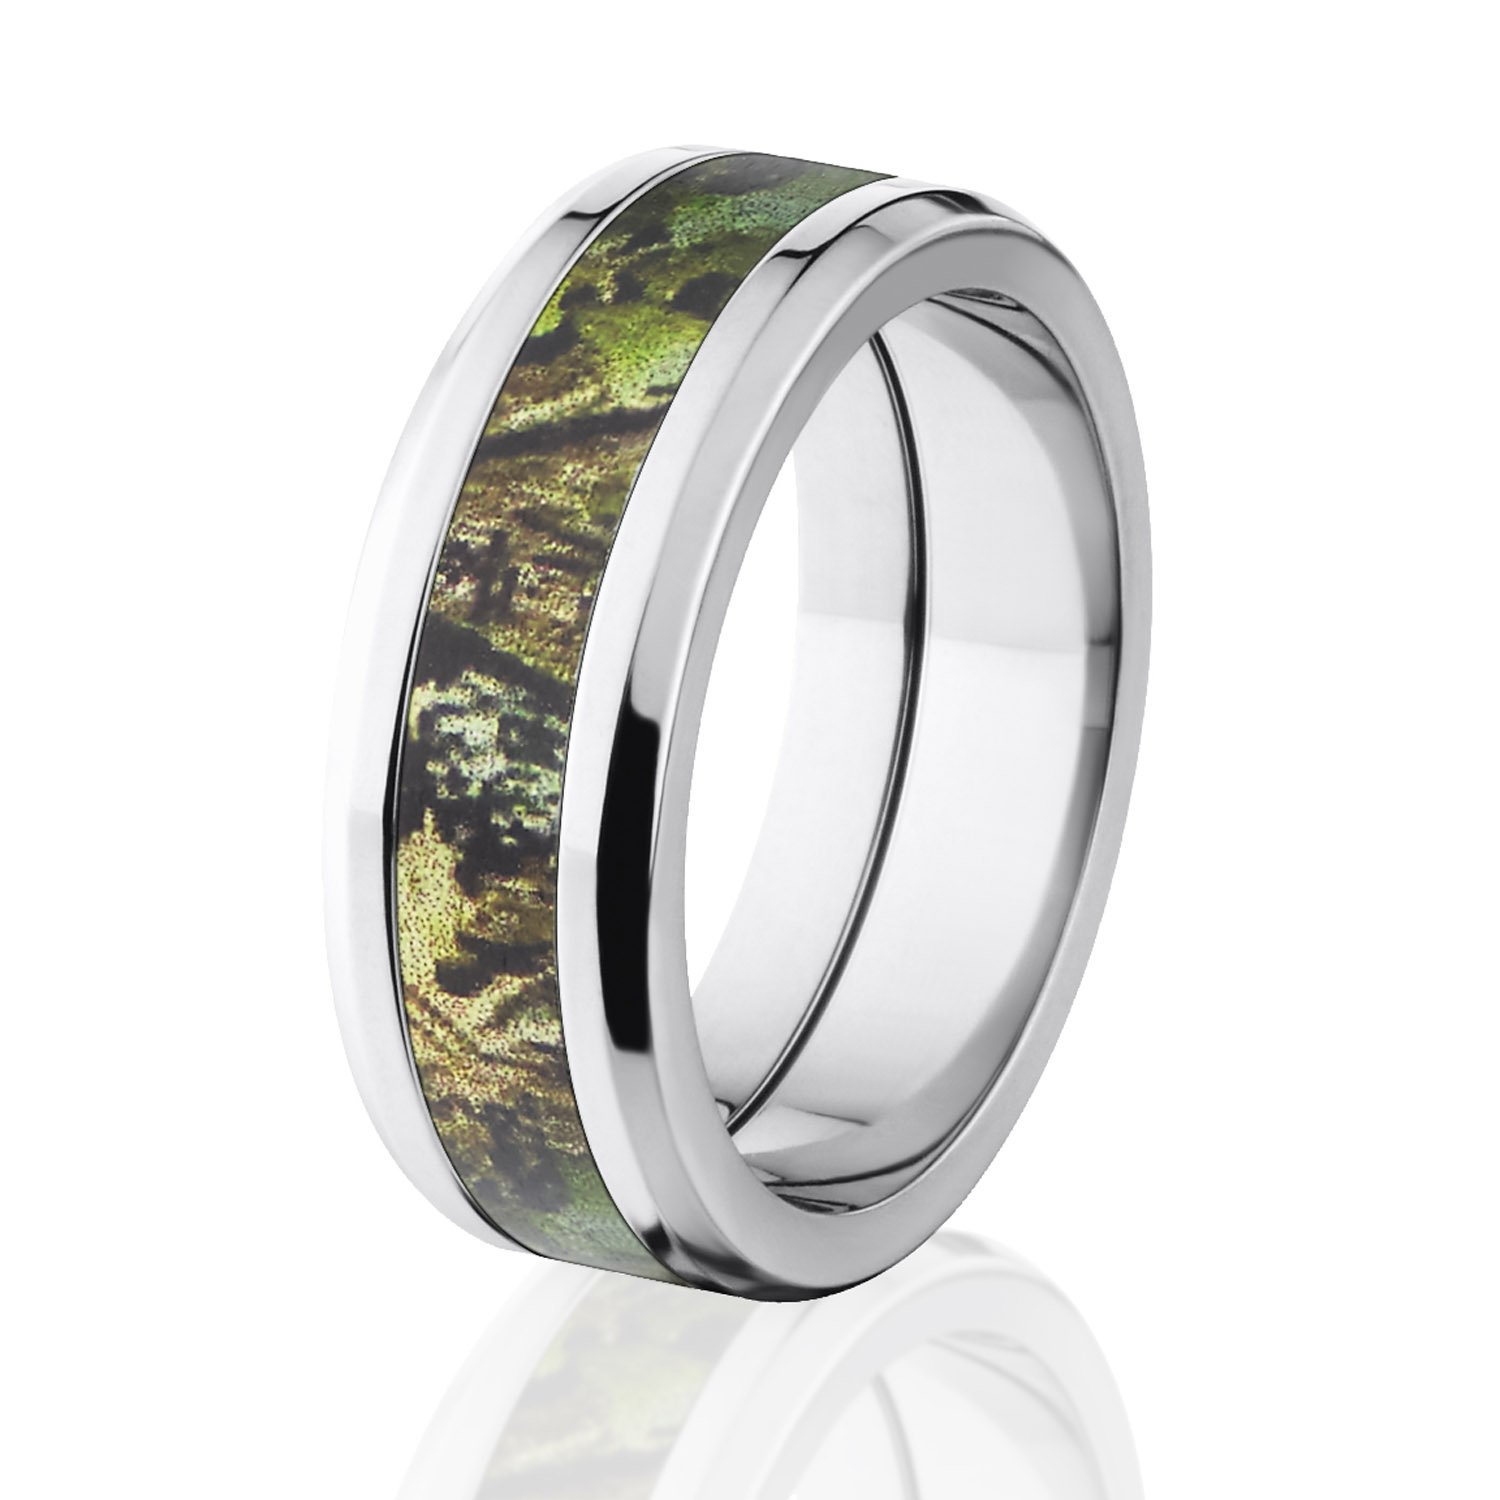 black outdoor shardon from on wedding three s in camouflage rings camo ring for men jewelry titanium accessories item anniversary band cross